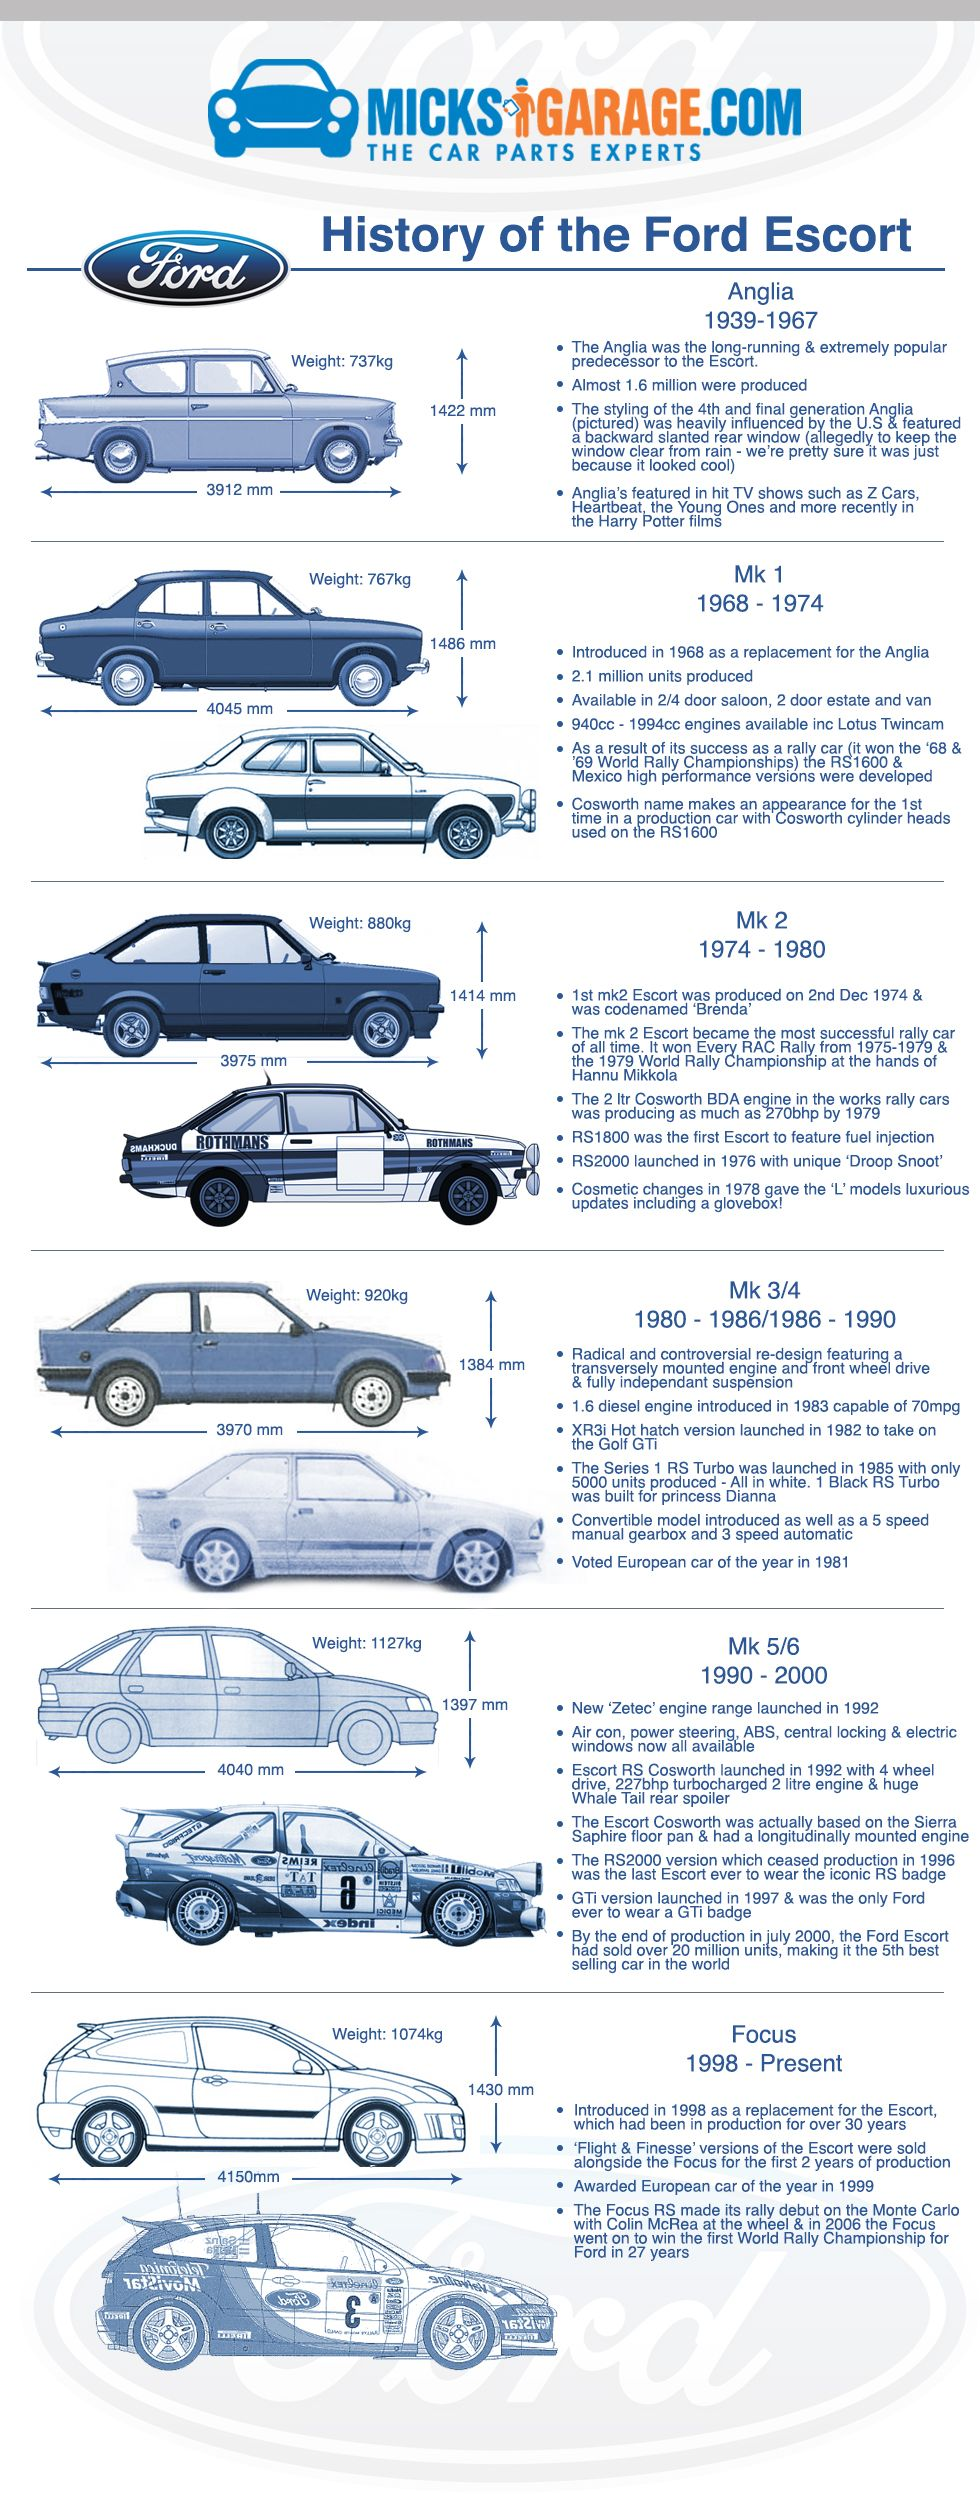 a history of the ford escort. the 5th best-selling car in the world